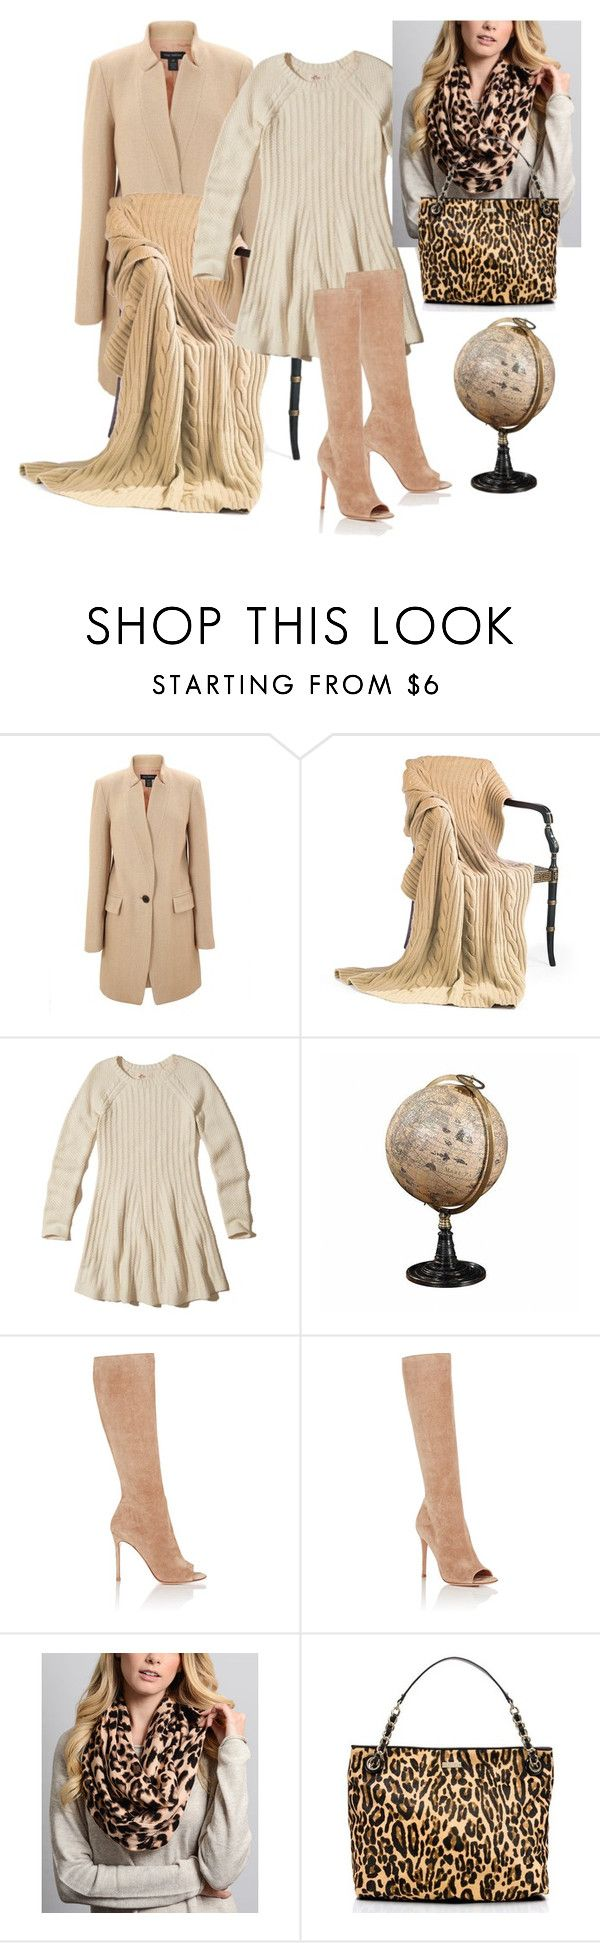 """""""spectacular"""" by daliaoutfits ❤ liked on Polyvore featuring Pink Tartan, Hollister Co., Gianvito Rossi, Leto and Kate Spade"""